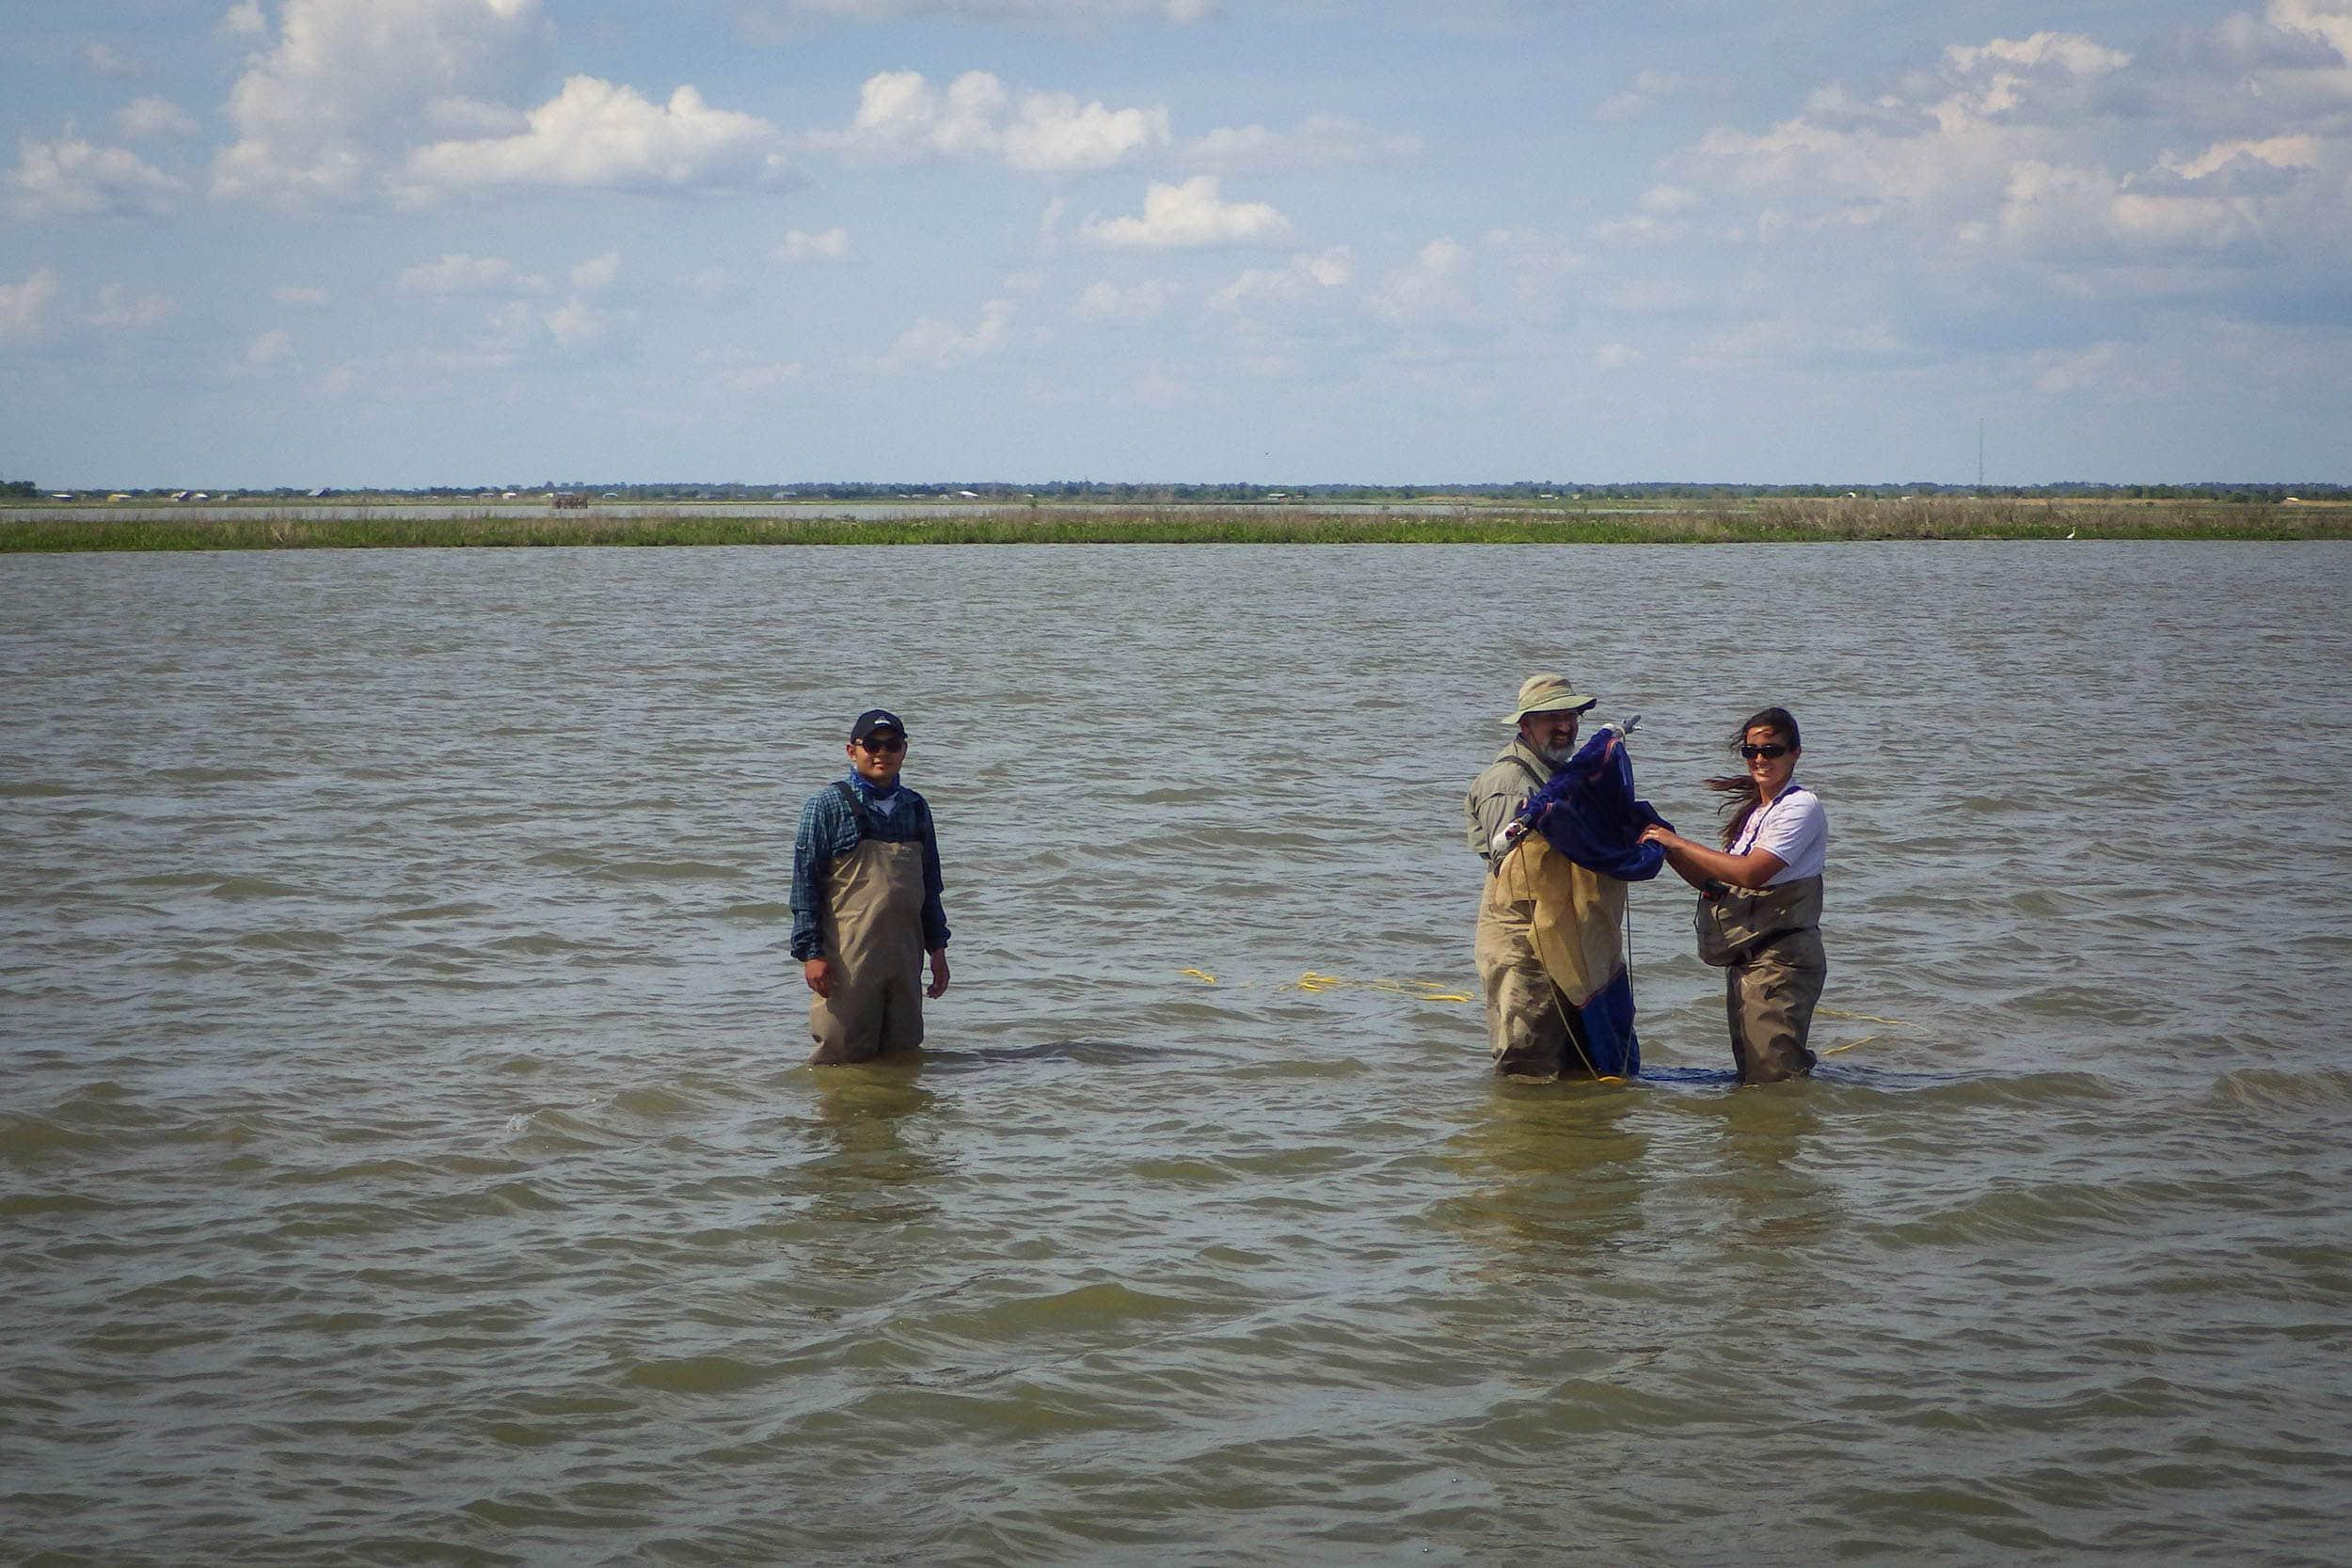 Raul Sarmiento, Dr. George Guillen, and Nicole Morris collect nekton at a sampling site in the Trinity River Delta